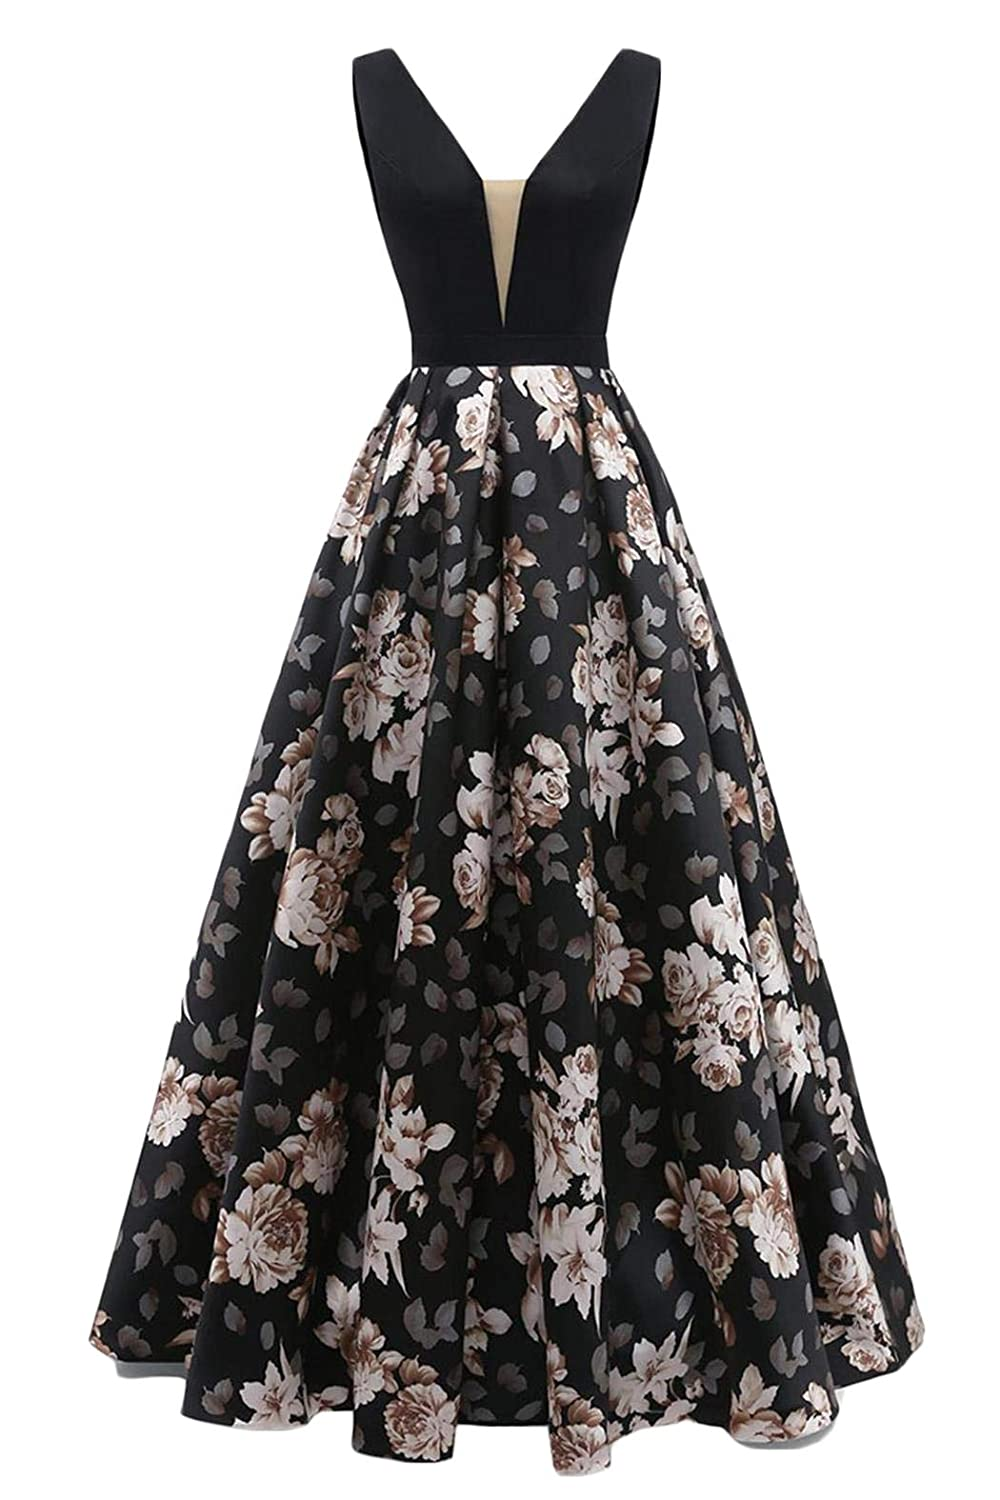 Black 2 Dydsz Long Evening Prom Dresses for Women Formal Gown with Pockets Print Floral D295